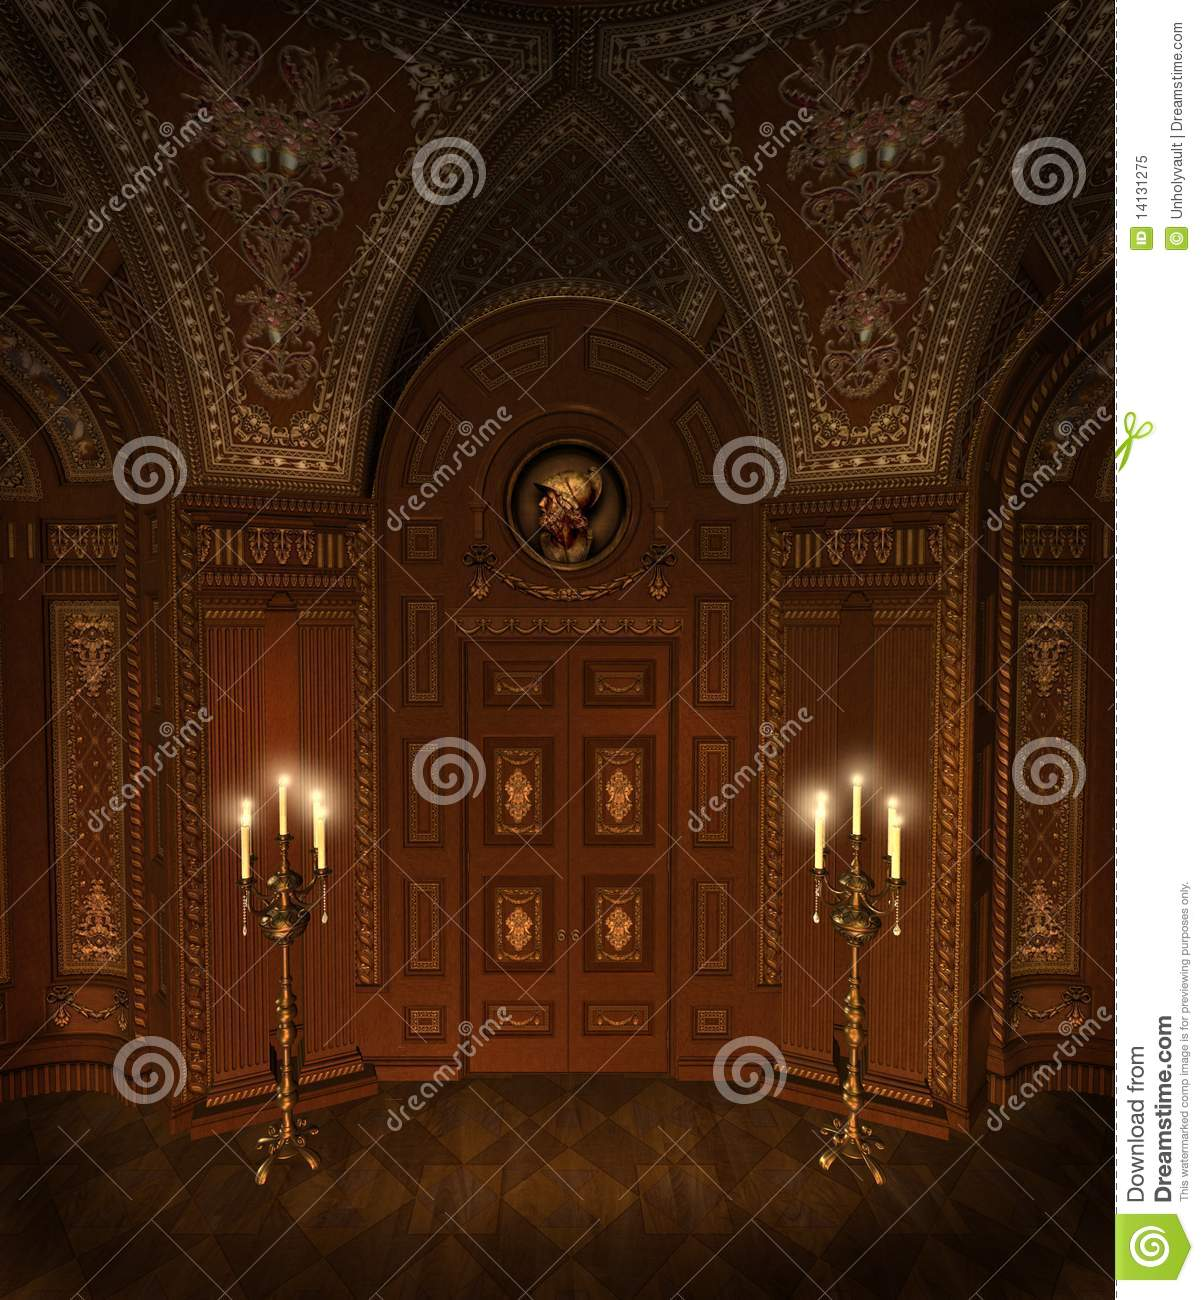 Baroque Room 6 Royalty Free Stock Photo Image 14131275